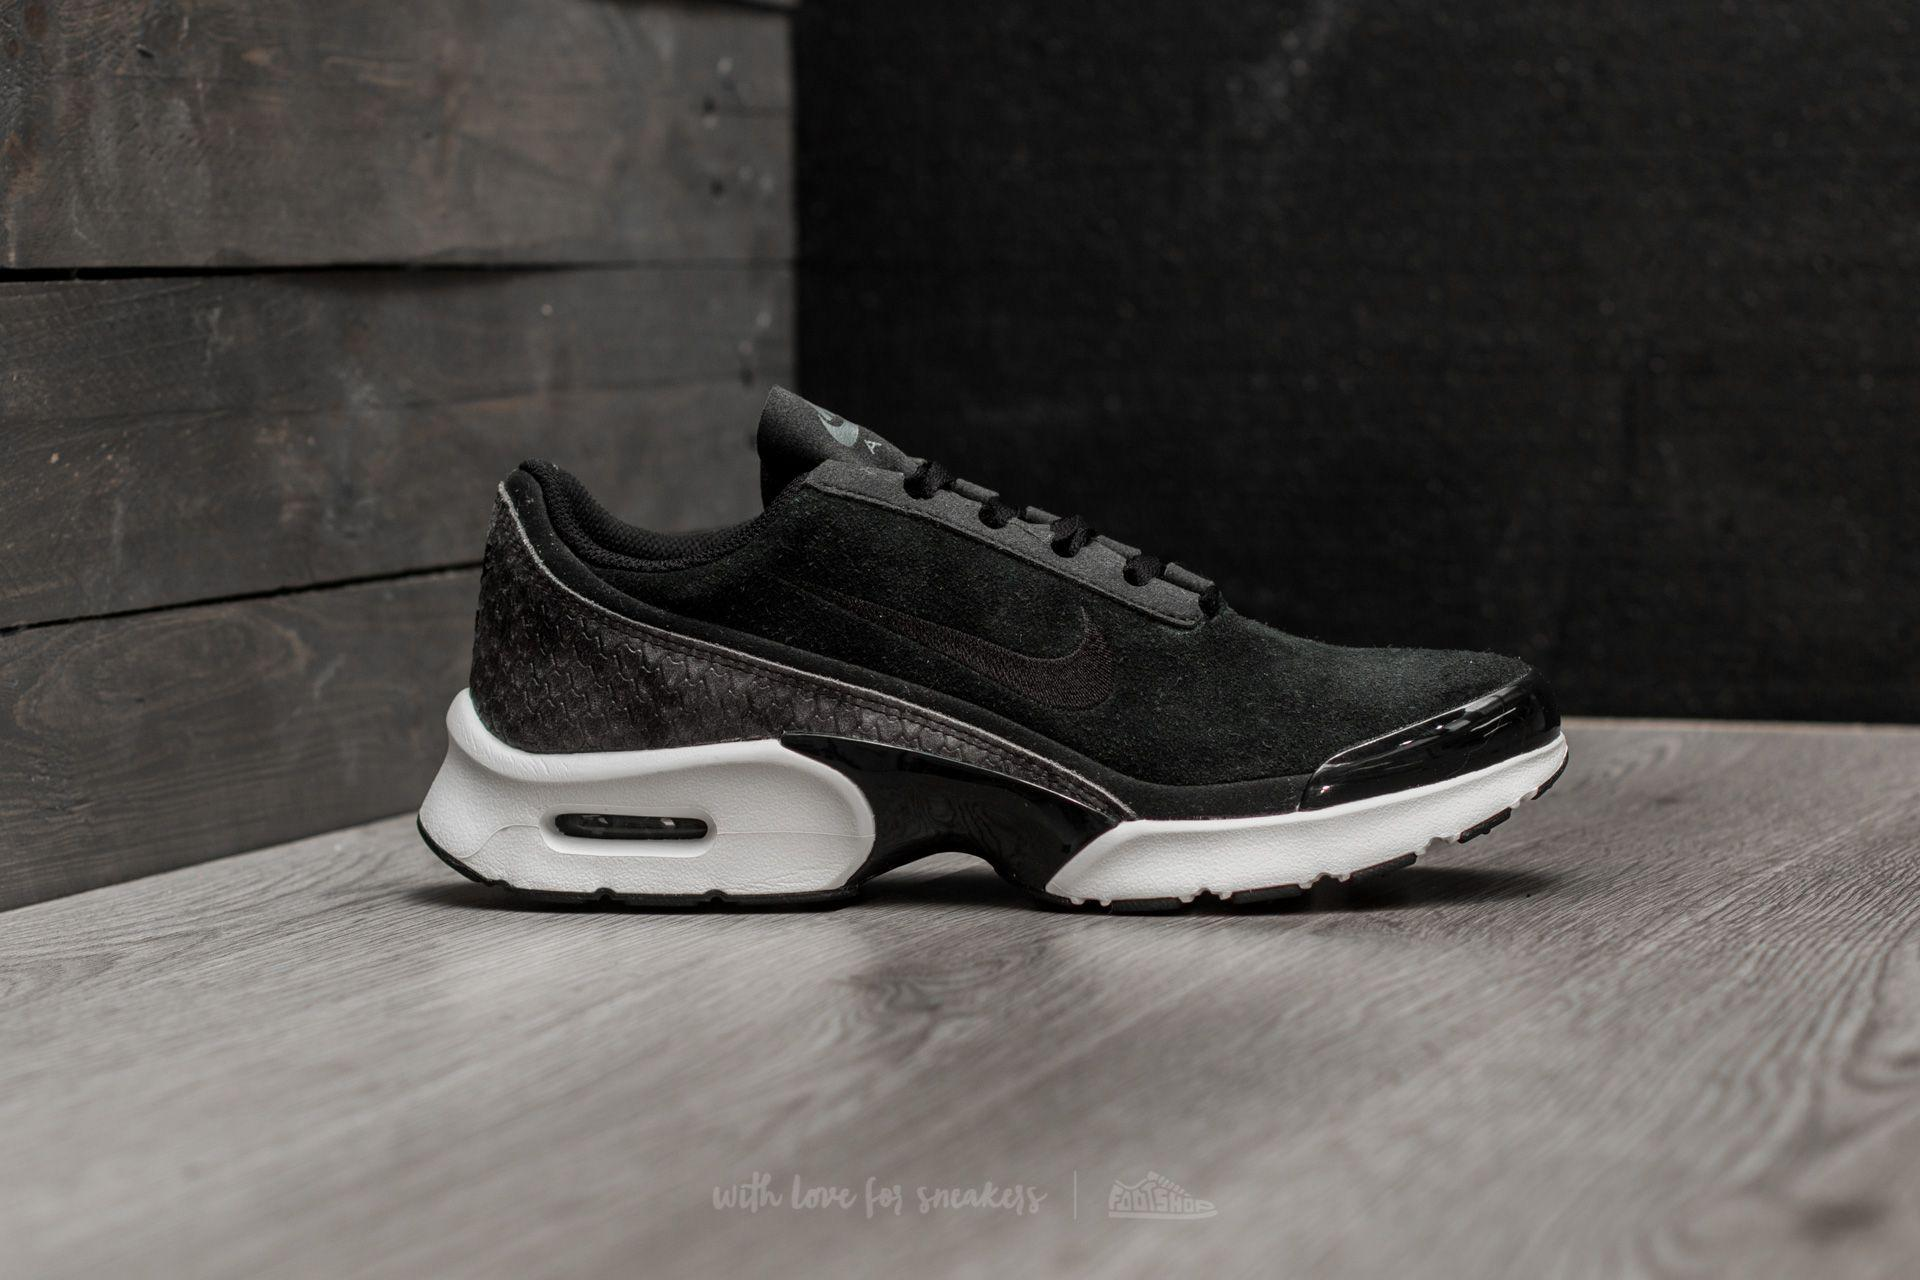 Nike Casual Air Max Jewell Premium Textile Black Black Sail Dark Grey